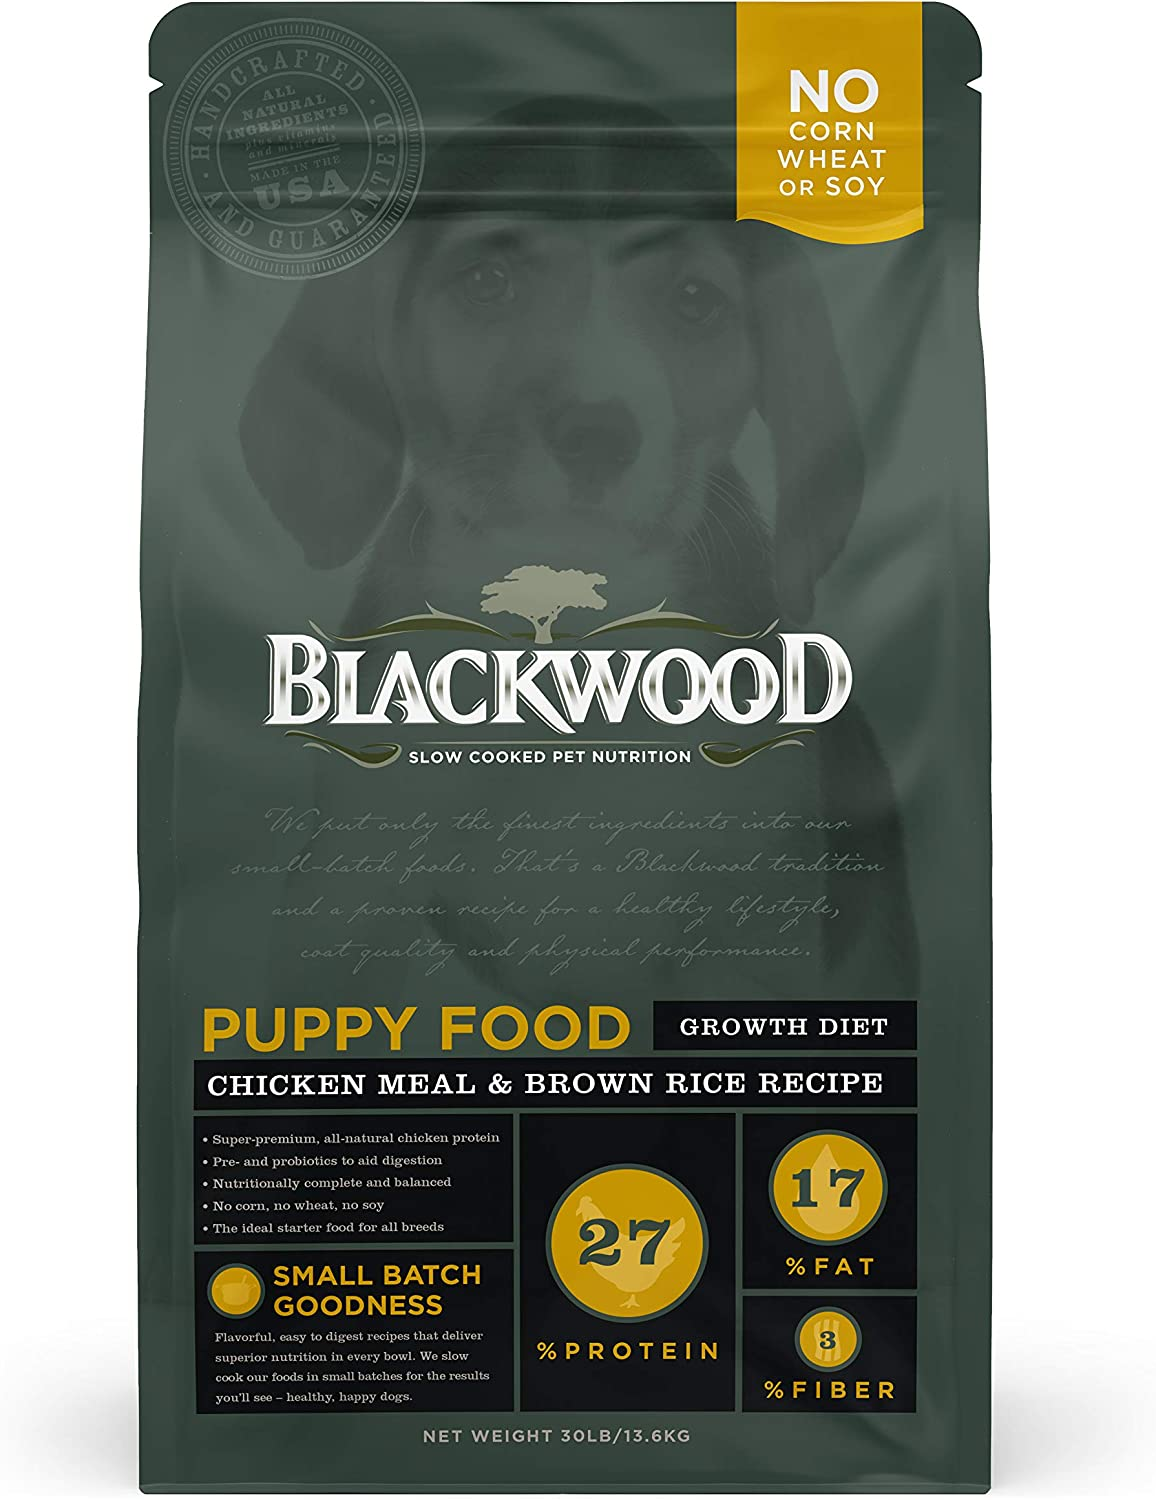 Blackwood Pet Puppy Food Growth Diet Made in USA [Natural Puppy Food Dry for All Breeds and Sizes], Chicken Meal & Brown Rice Recipe